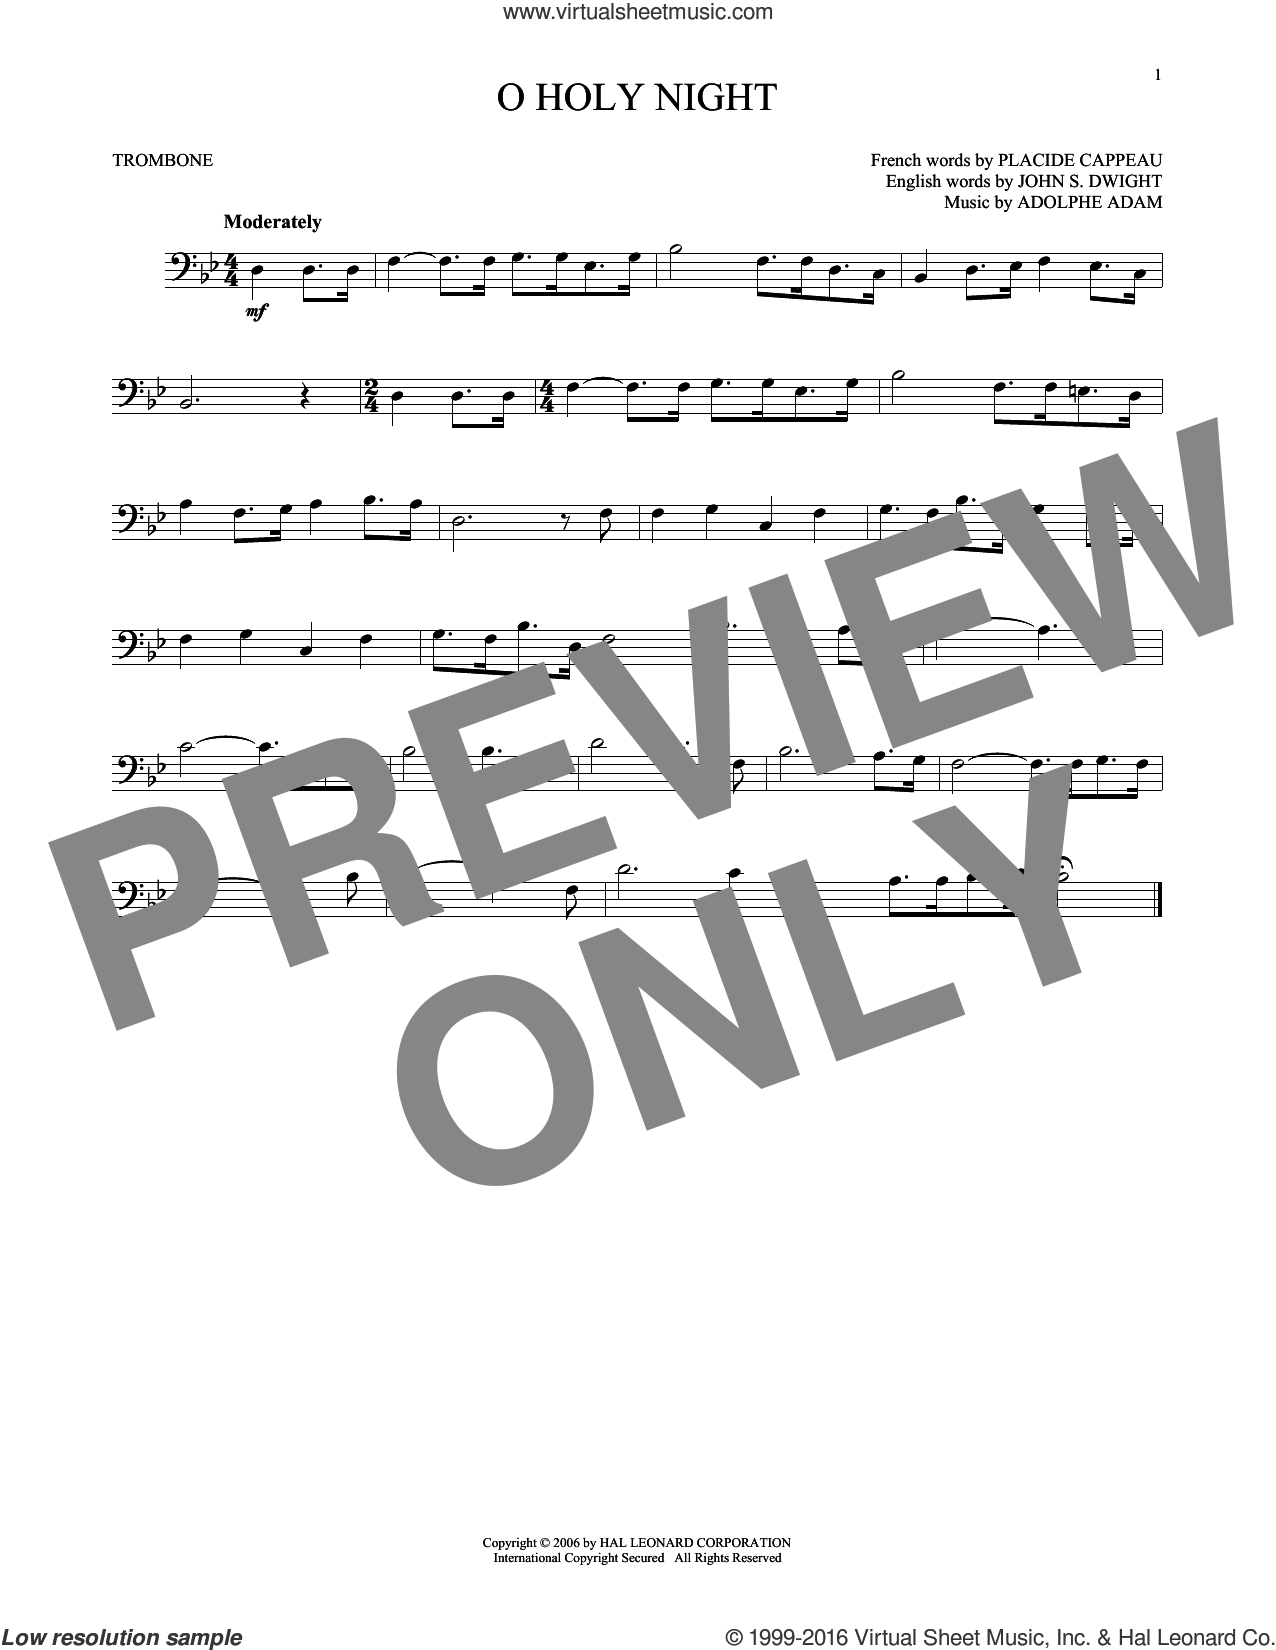 O Holy Night sheet music for trombone solo by Adolphe Adam, Christmas carol score, intermediate trombone. Score Image Preview.